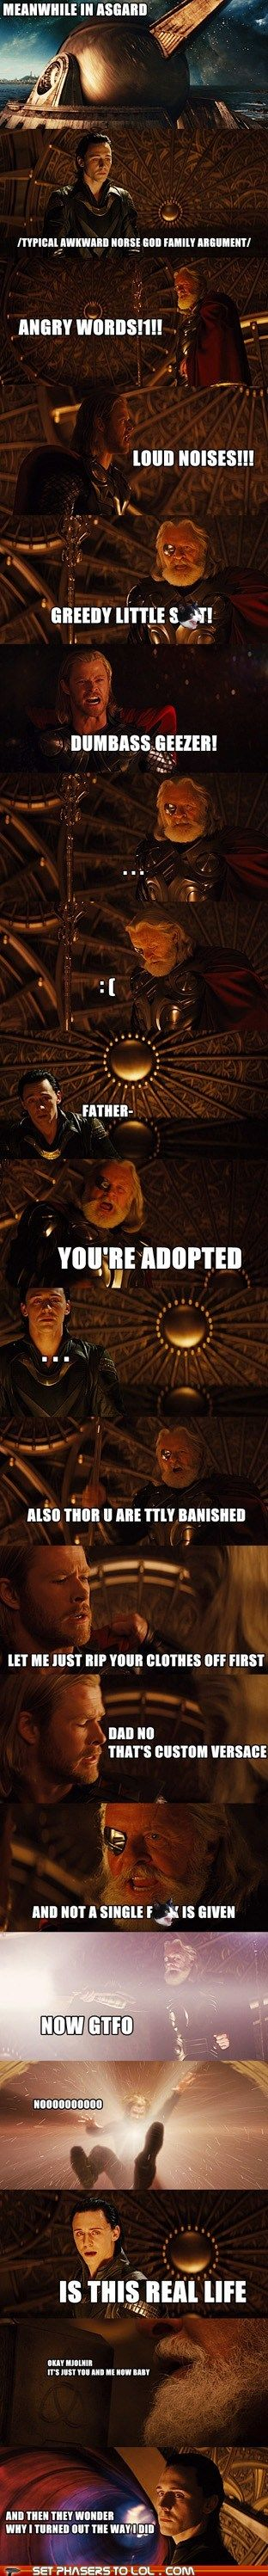 sum up of why odin, loki and thor are such a dysfunctional family... makes sense